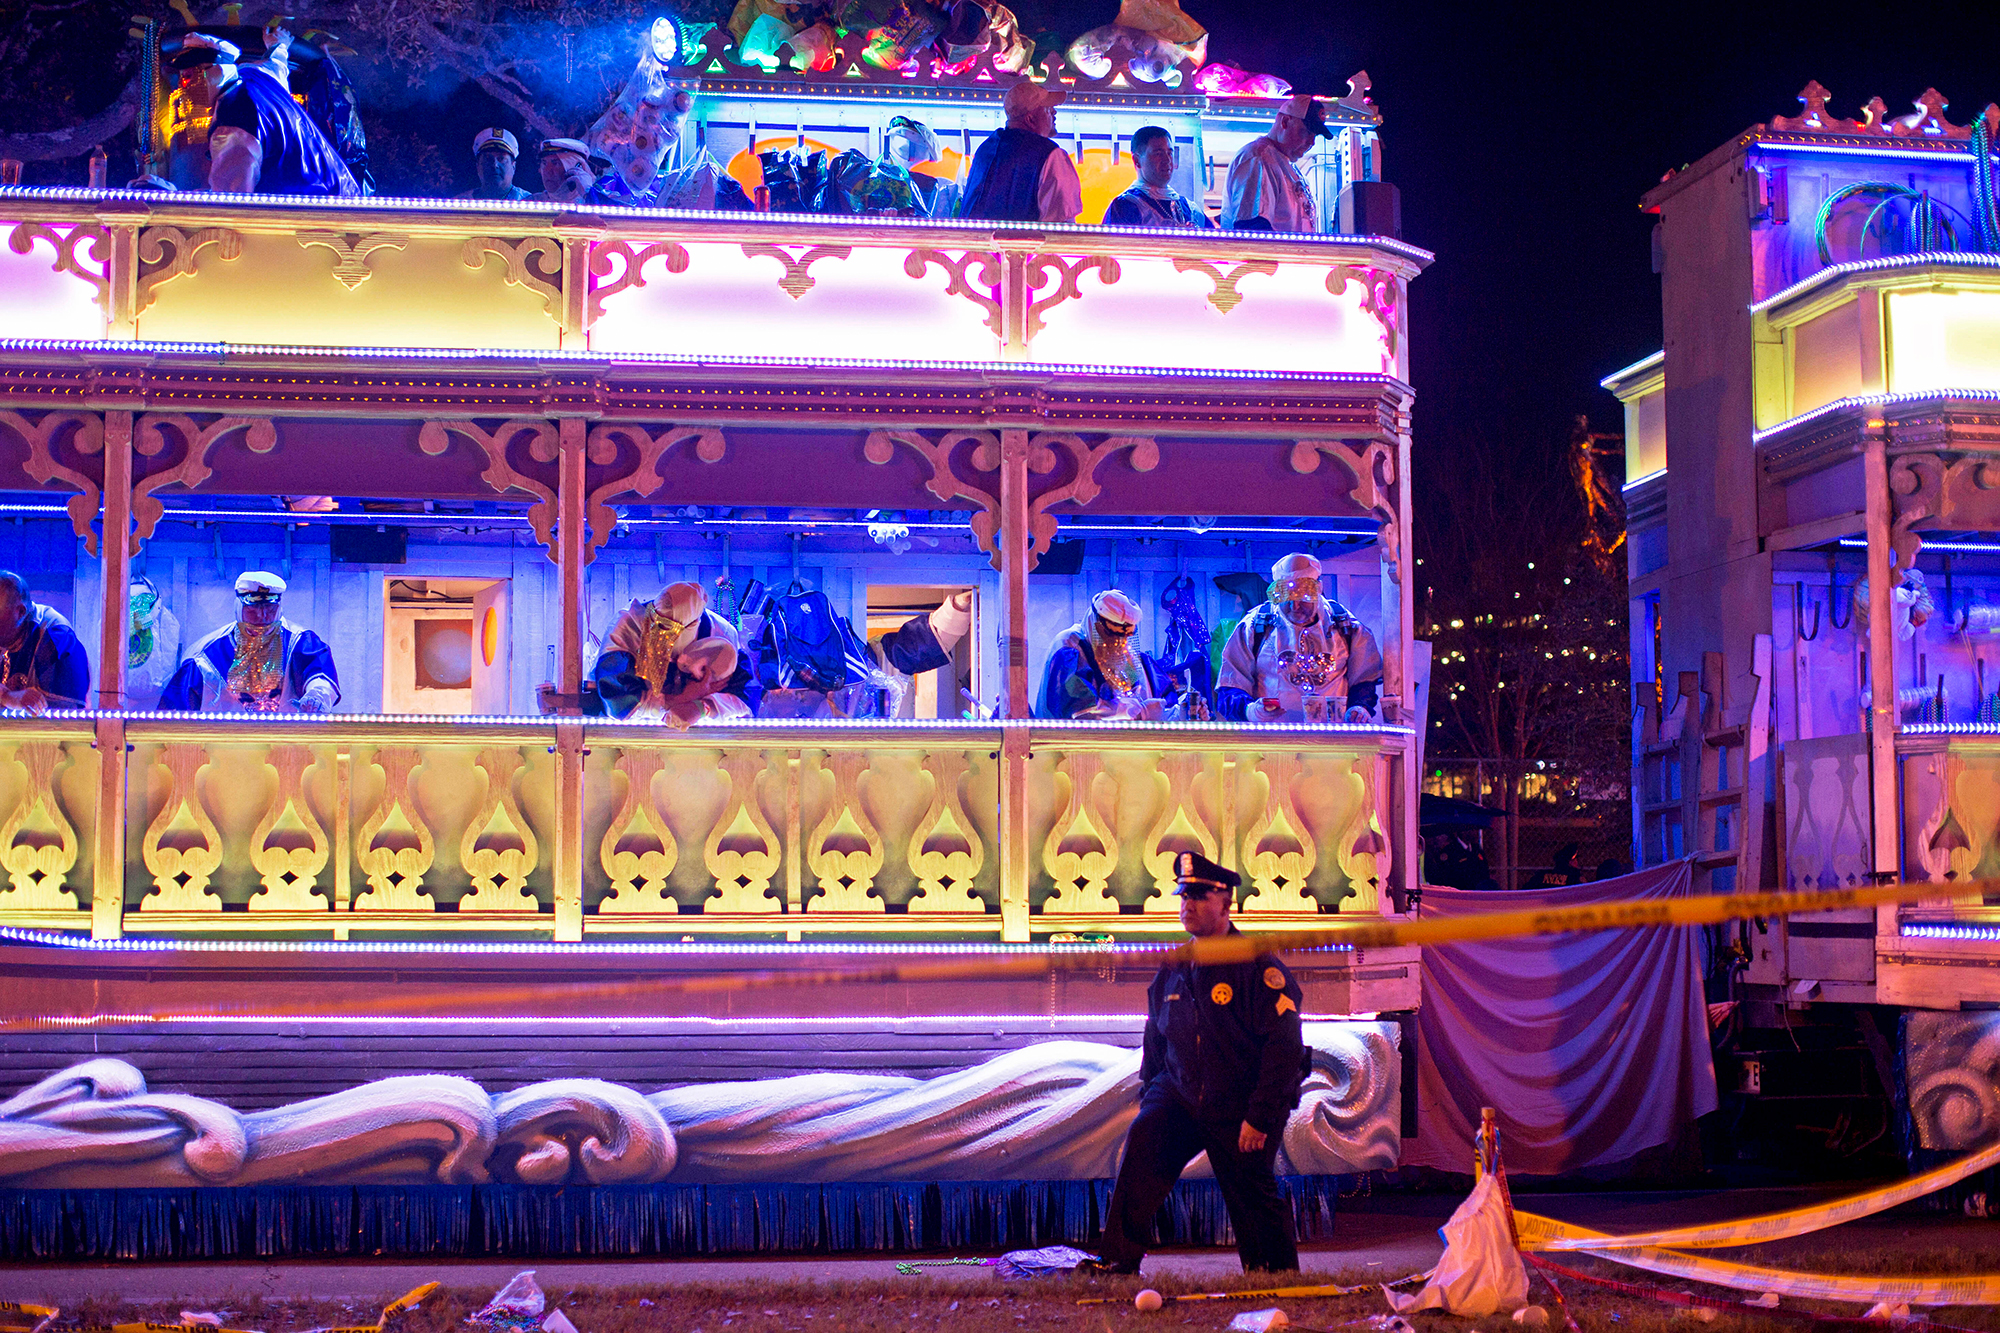 New Orleans bans tandem floats for the rest of Mardi Gras season after second deadly parade accident